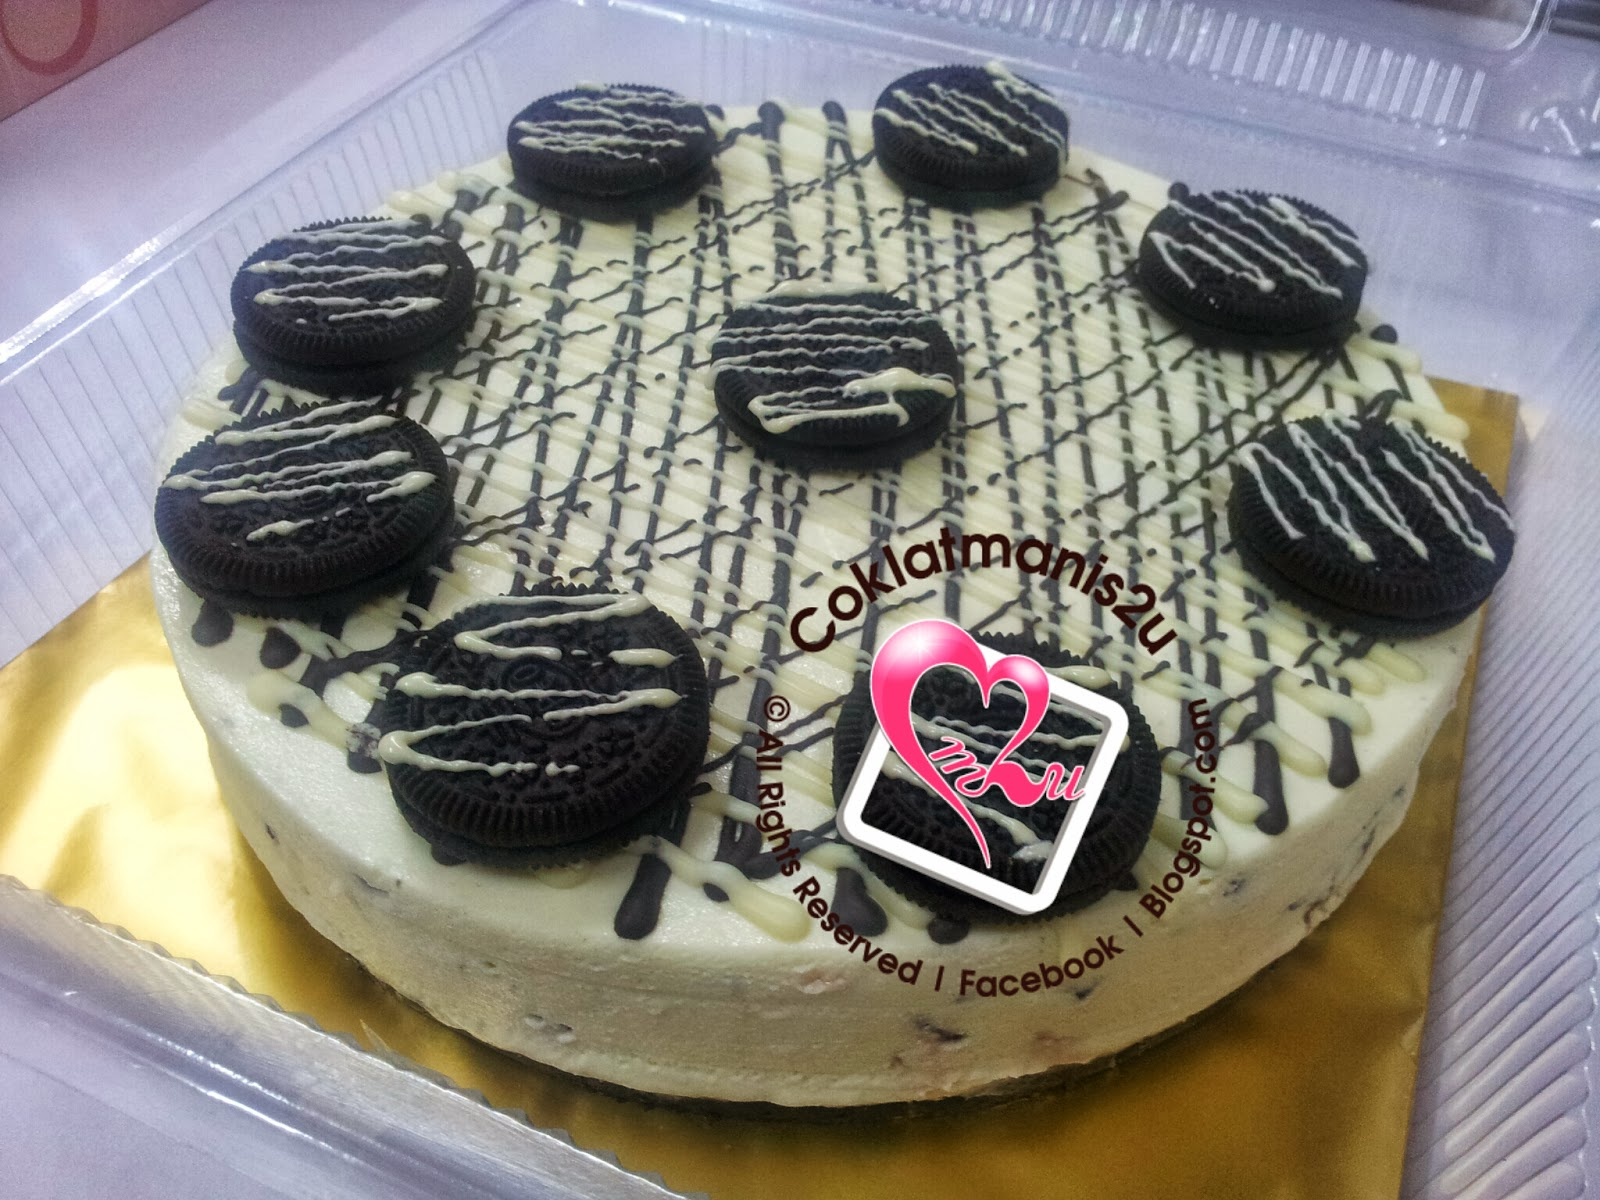 Oreo Cheese Cake (Chilled)